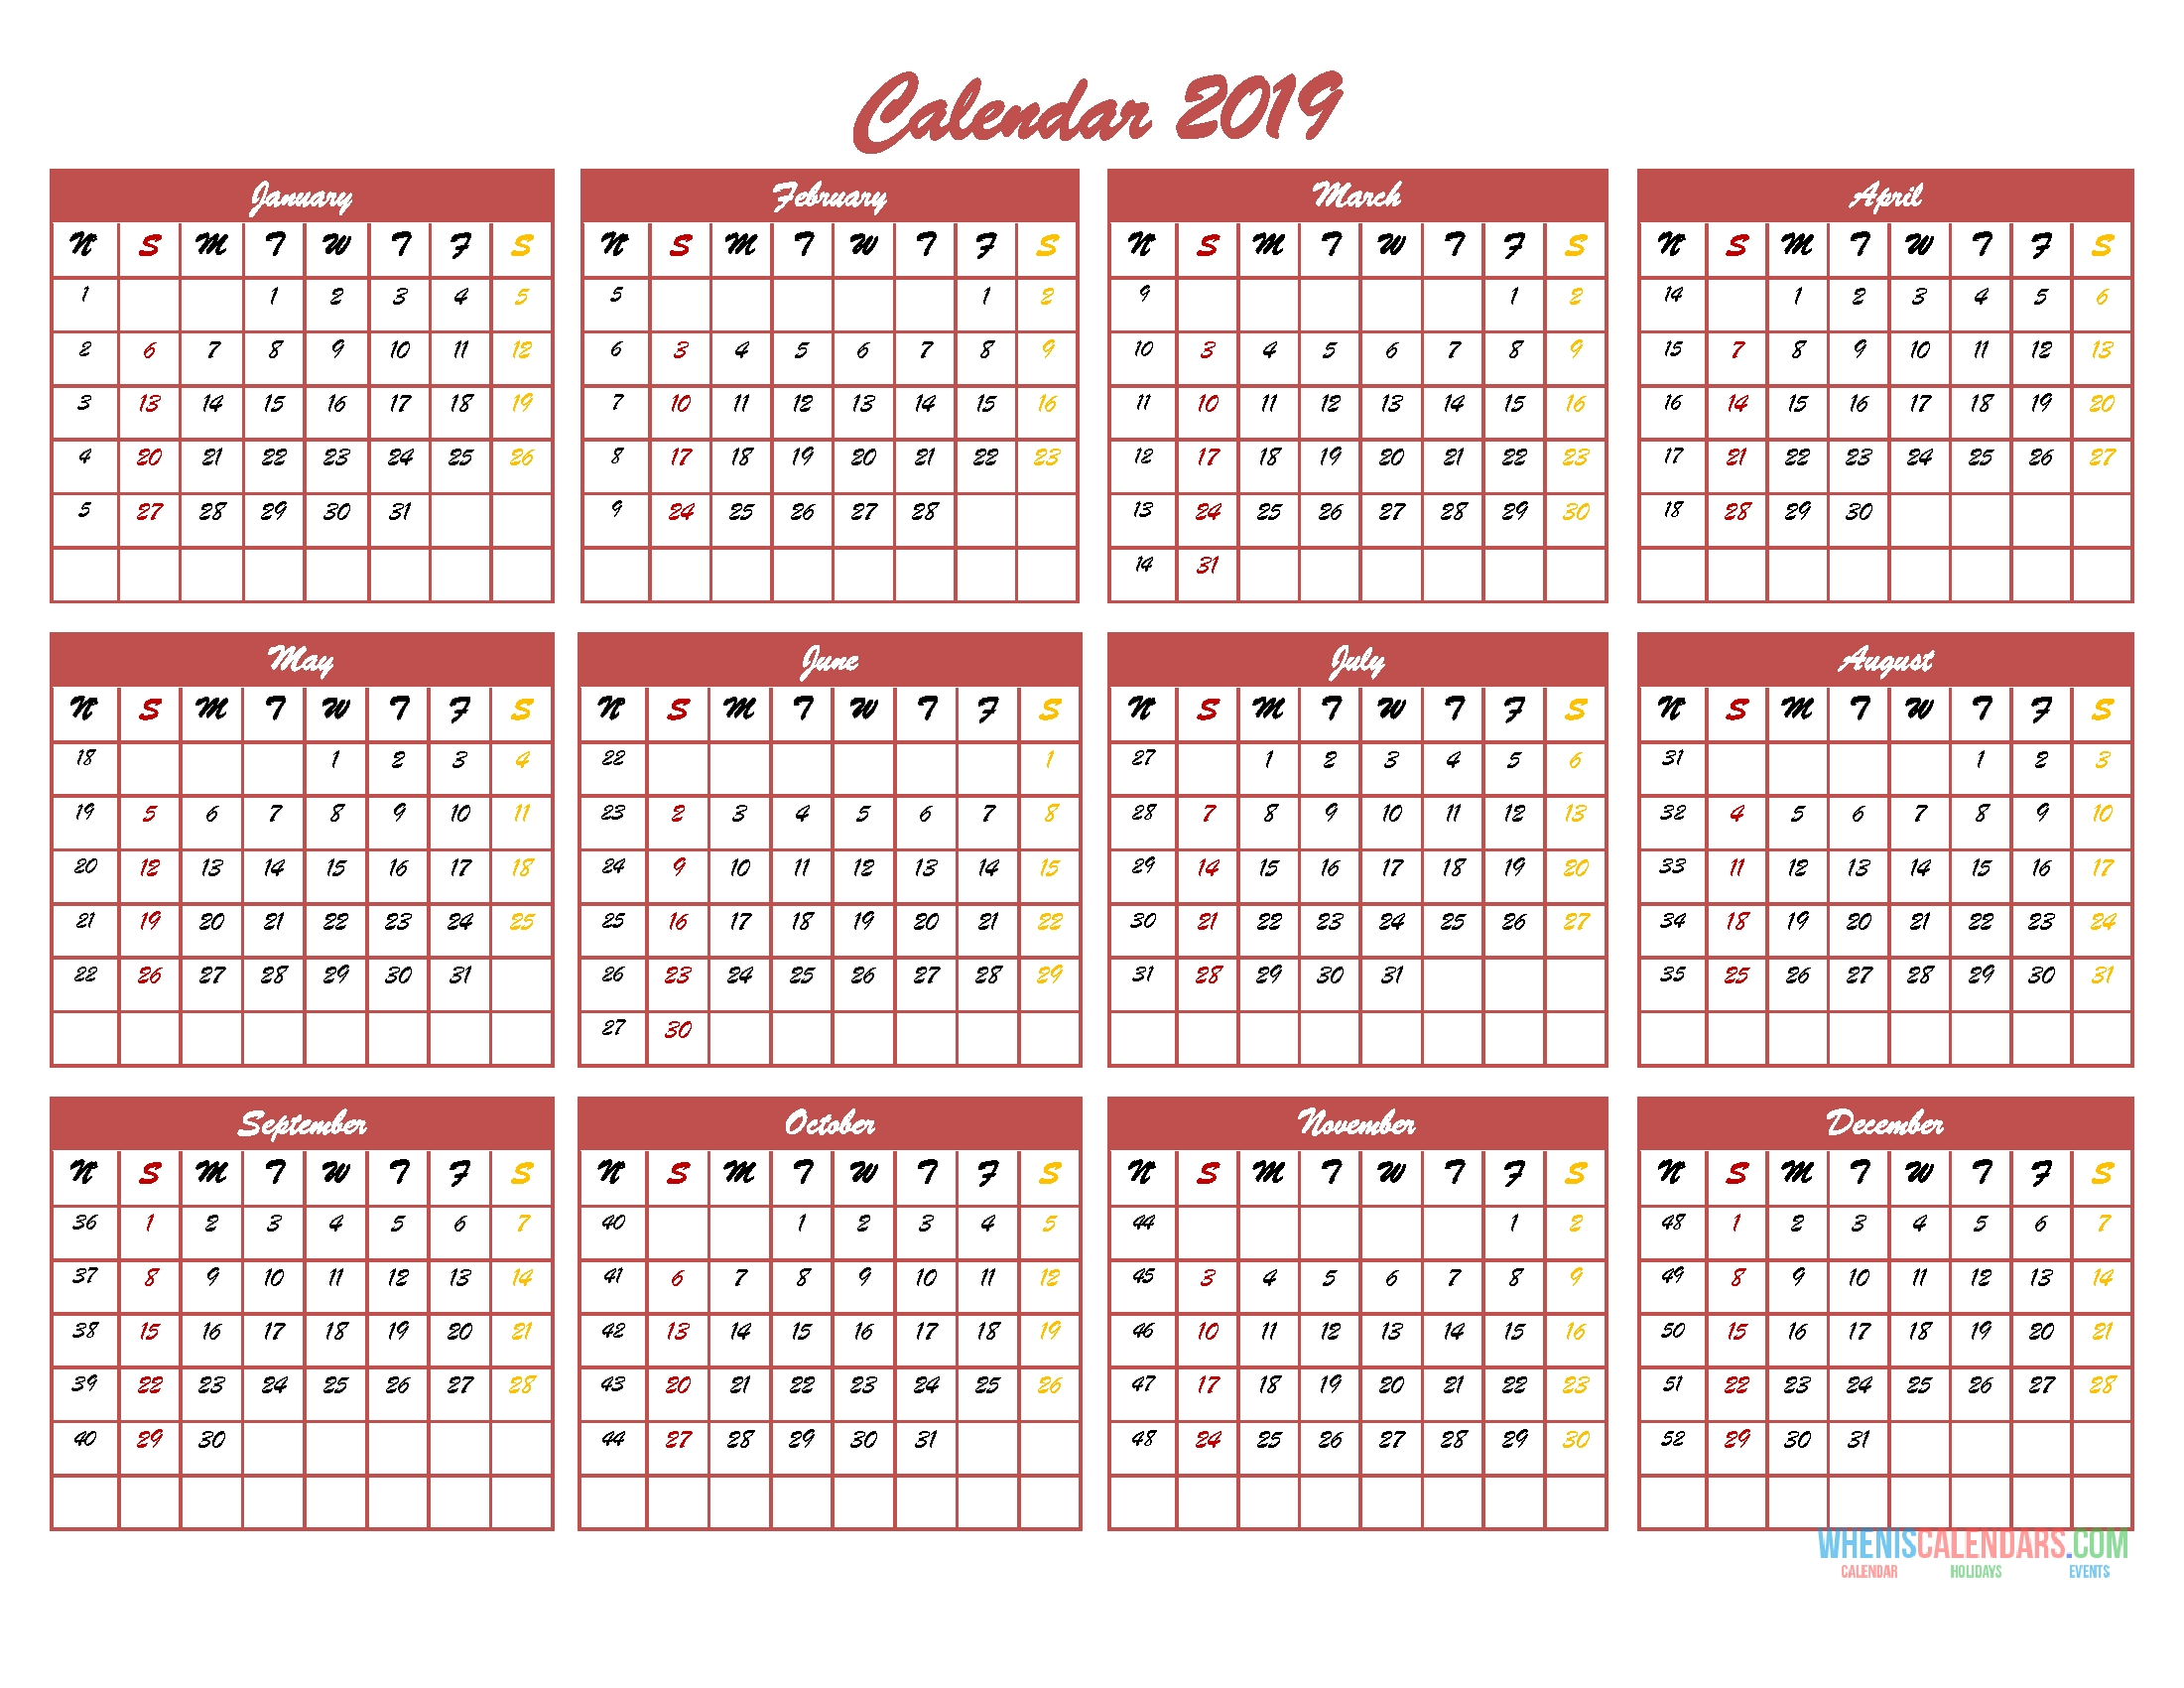 2019 12 Month Calendar Template In One Page Pdf, Image, Excel | Free within 12 Month Calendar One Page